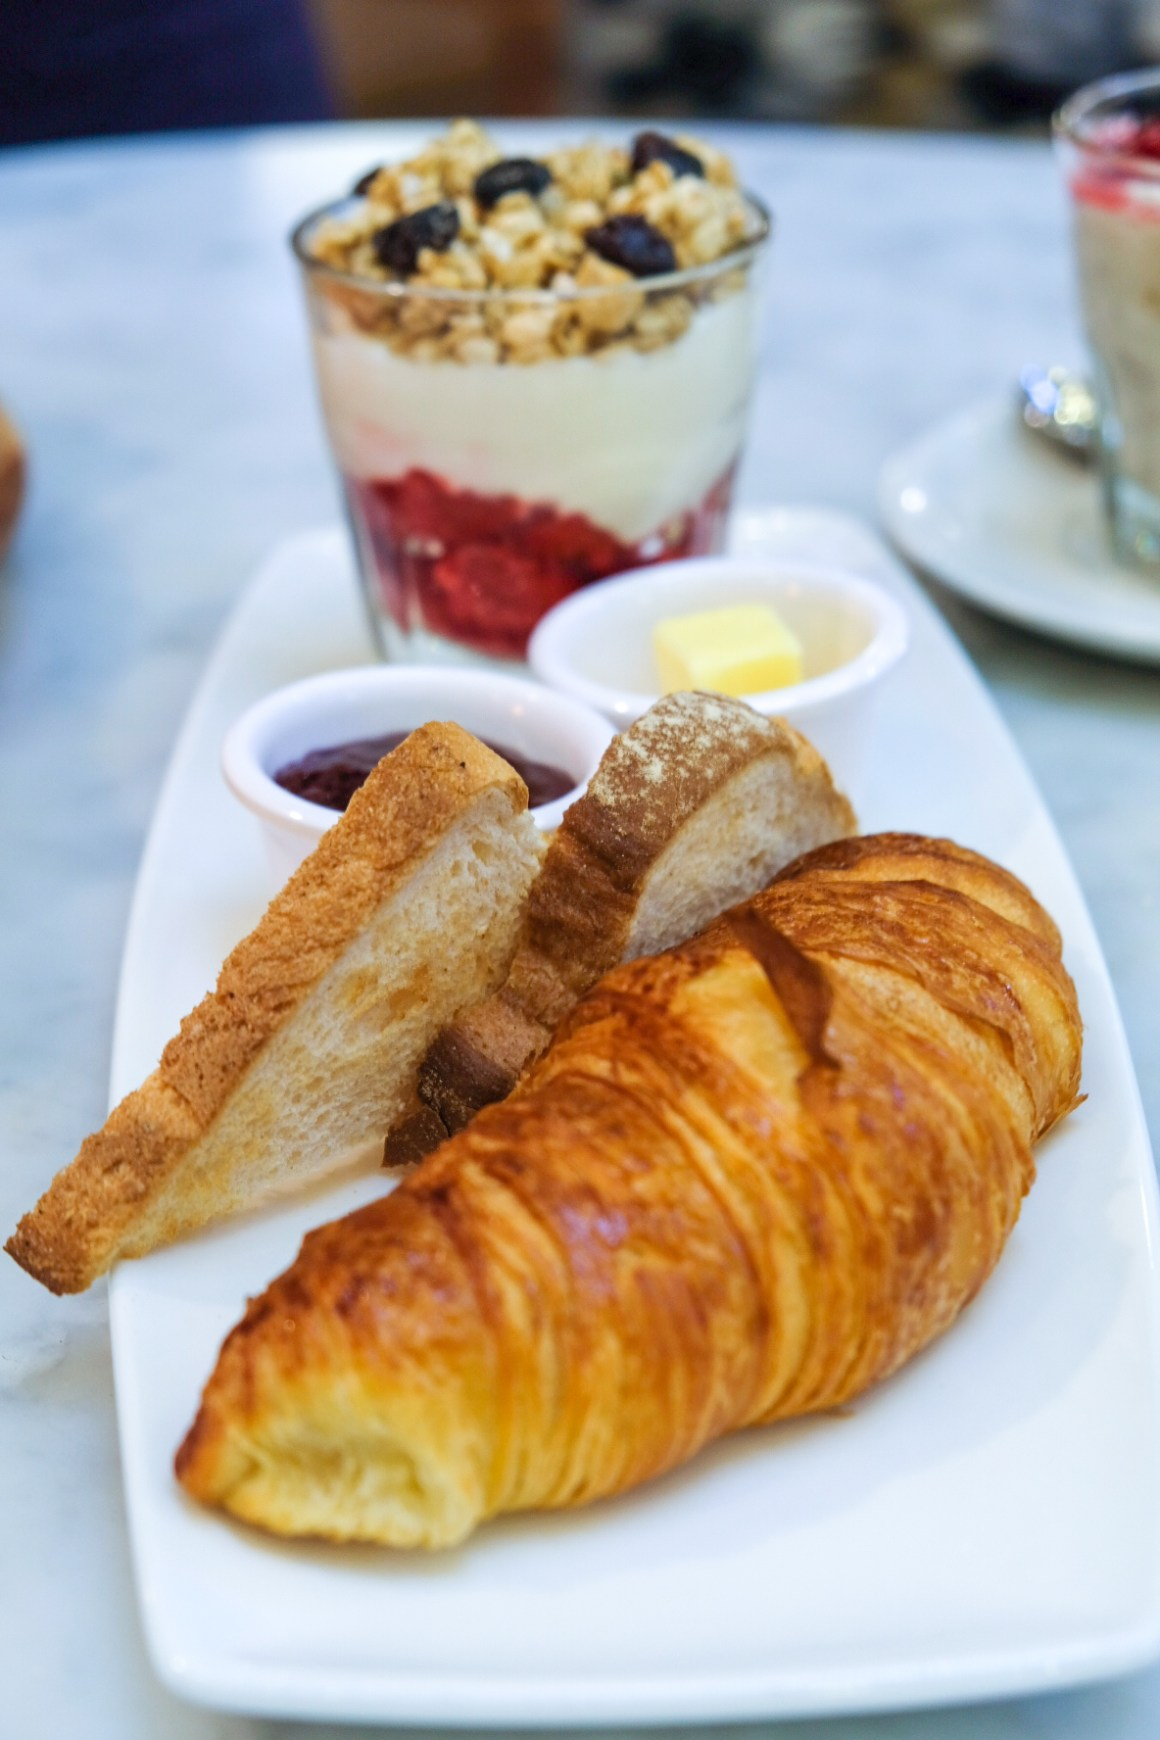 M&S Cafe New Menu Items - Continental Breakfast for One ($18)